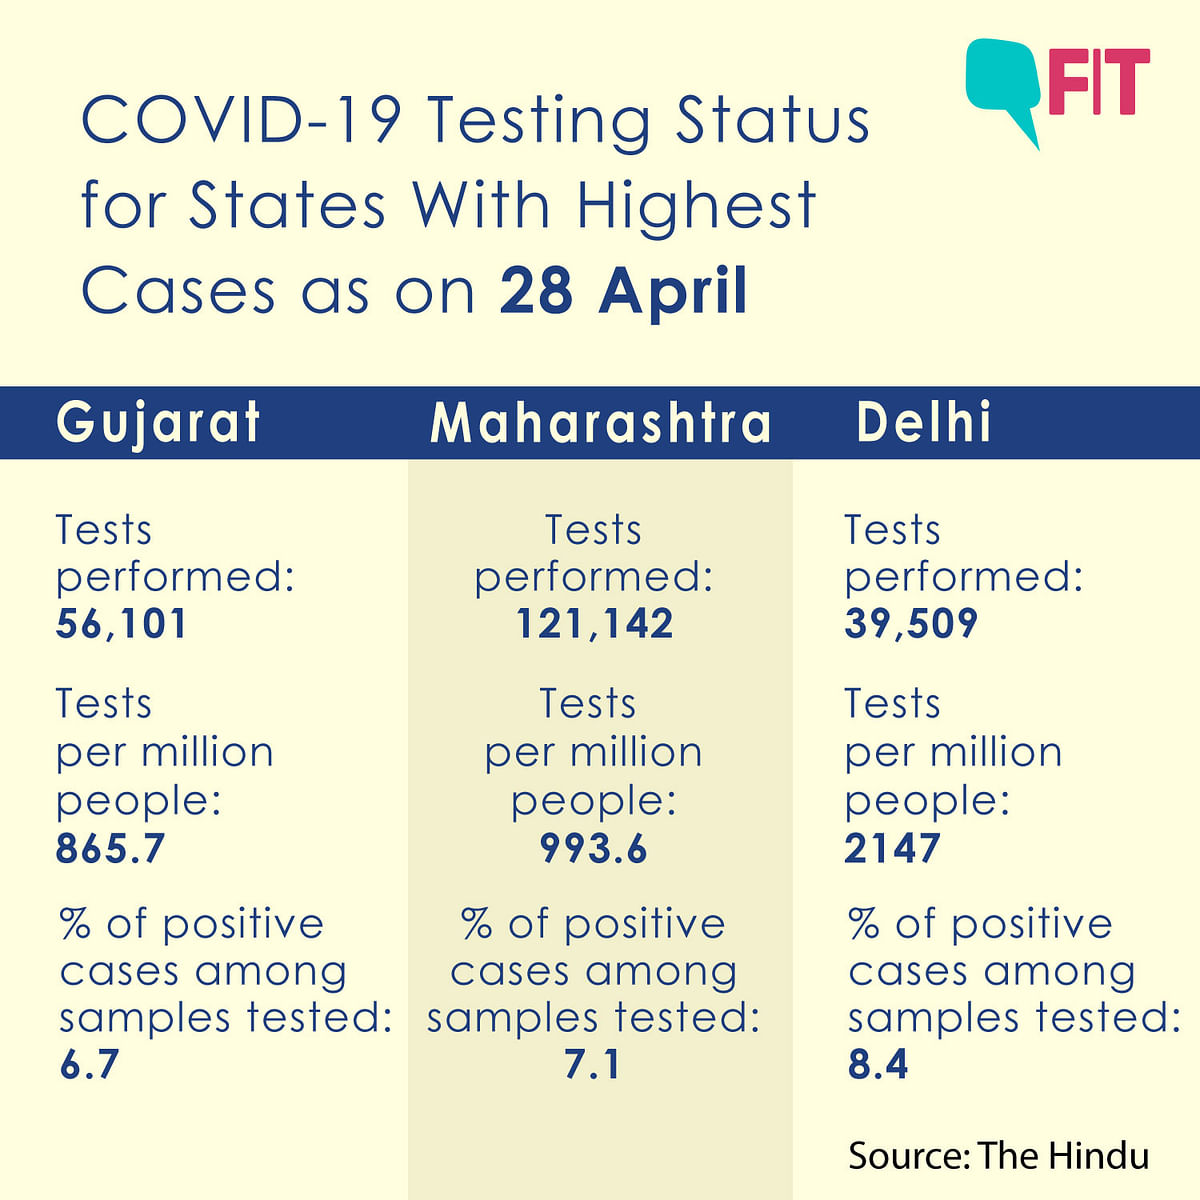 What Explains the Sudden Surge of COVID-19 Cases in Gujarat?